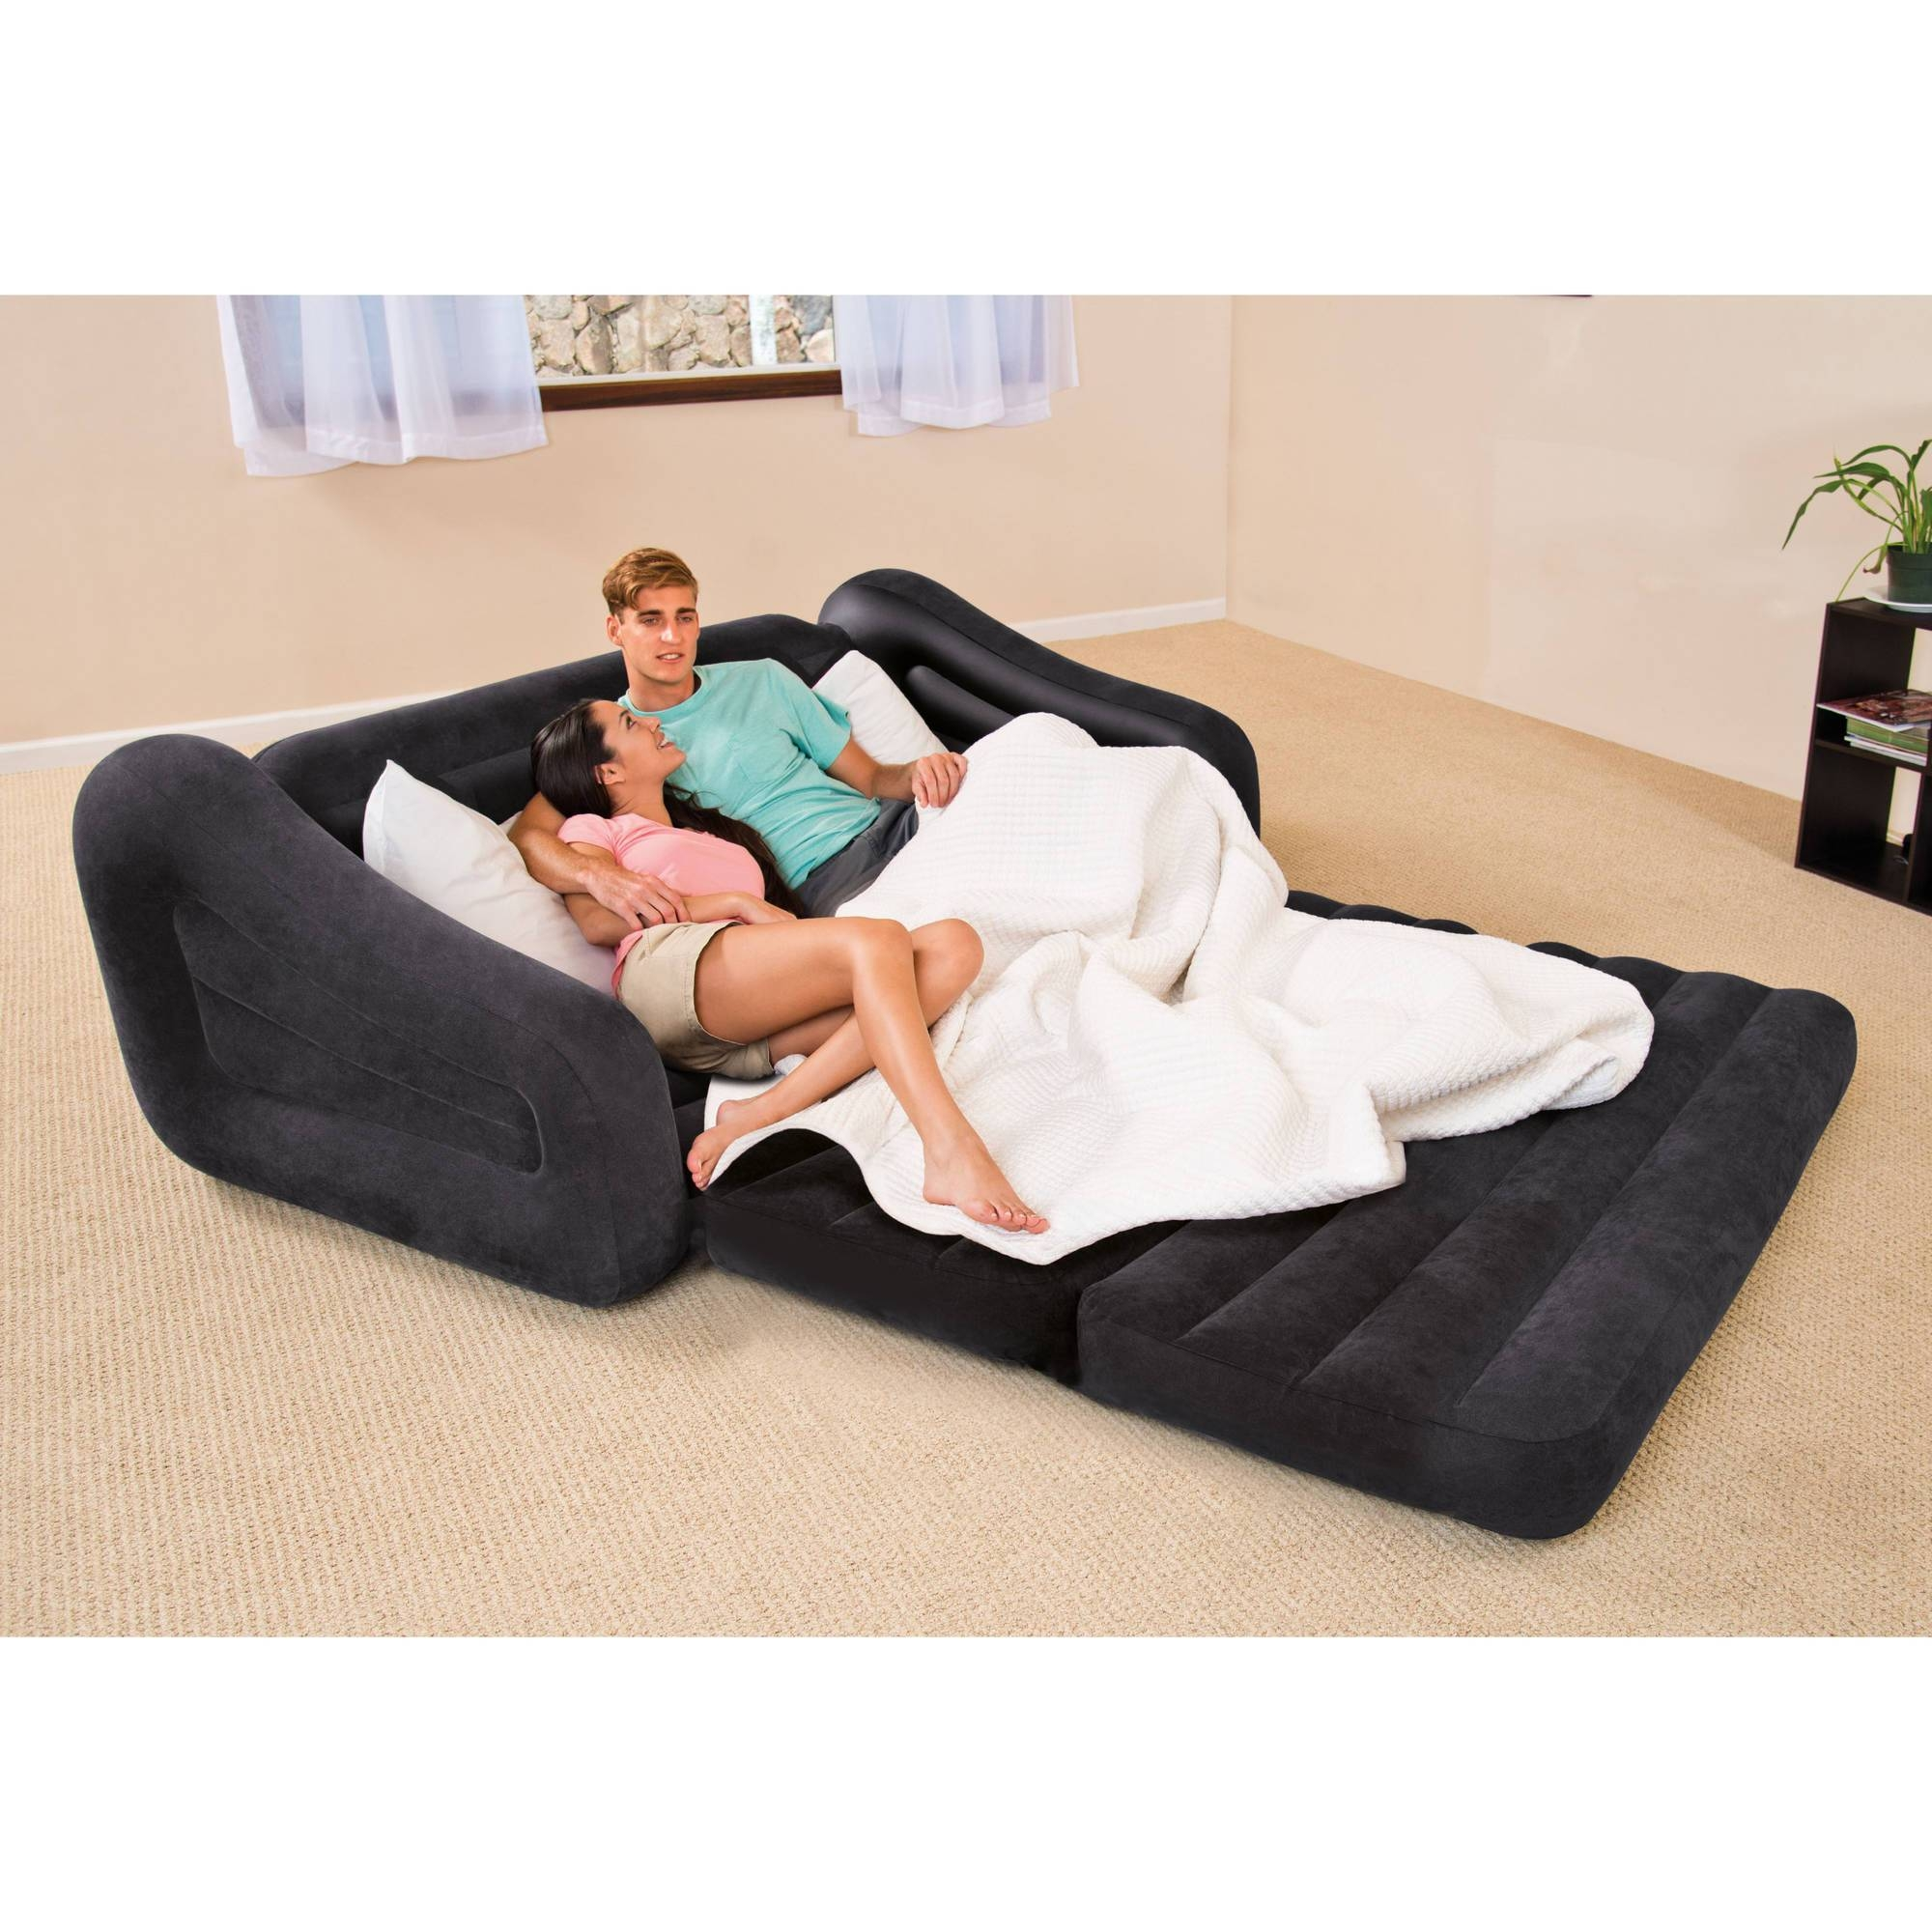 Intex Queen Inflatable Pull-Out Sofa Bed - Walmart intended for Intex Air Sofa Beds (Image 13 of 15)